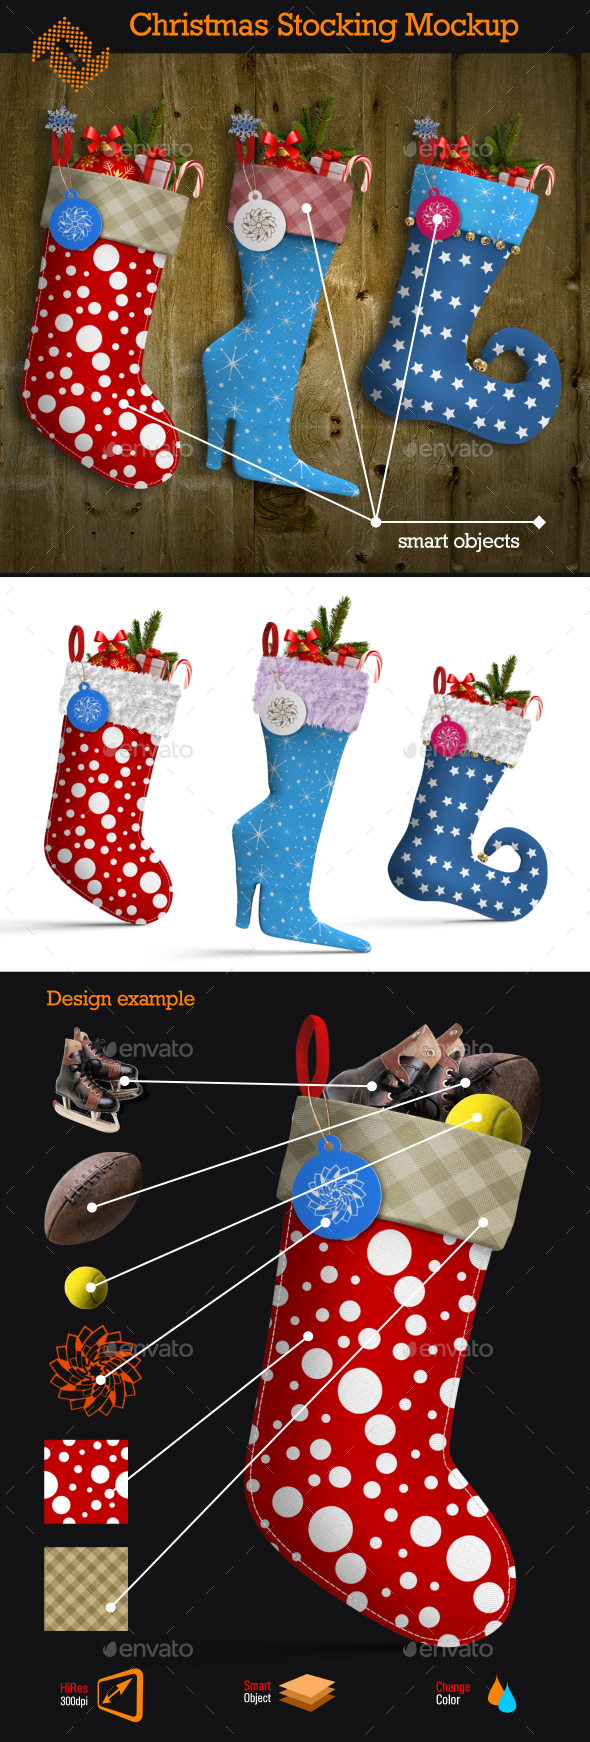 Christmas Stocking Mockup - Product Mock-Ups Graphics